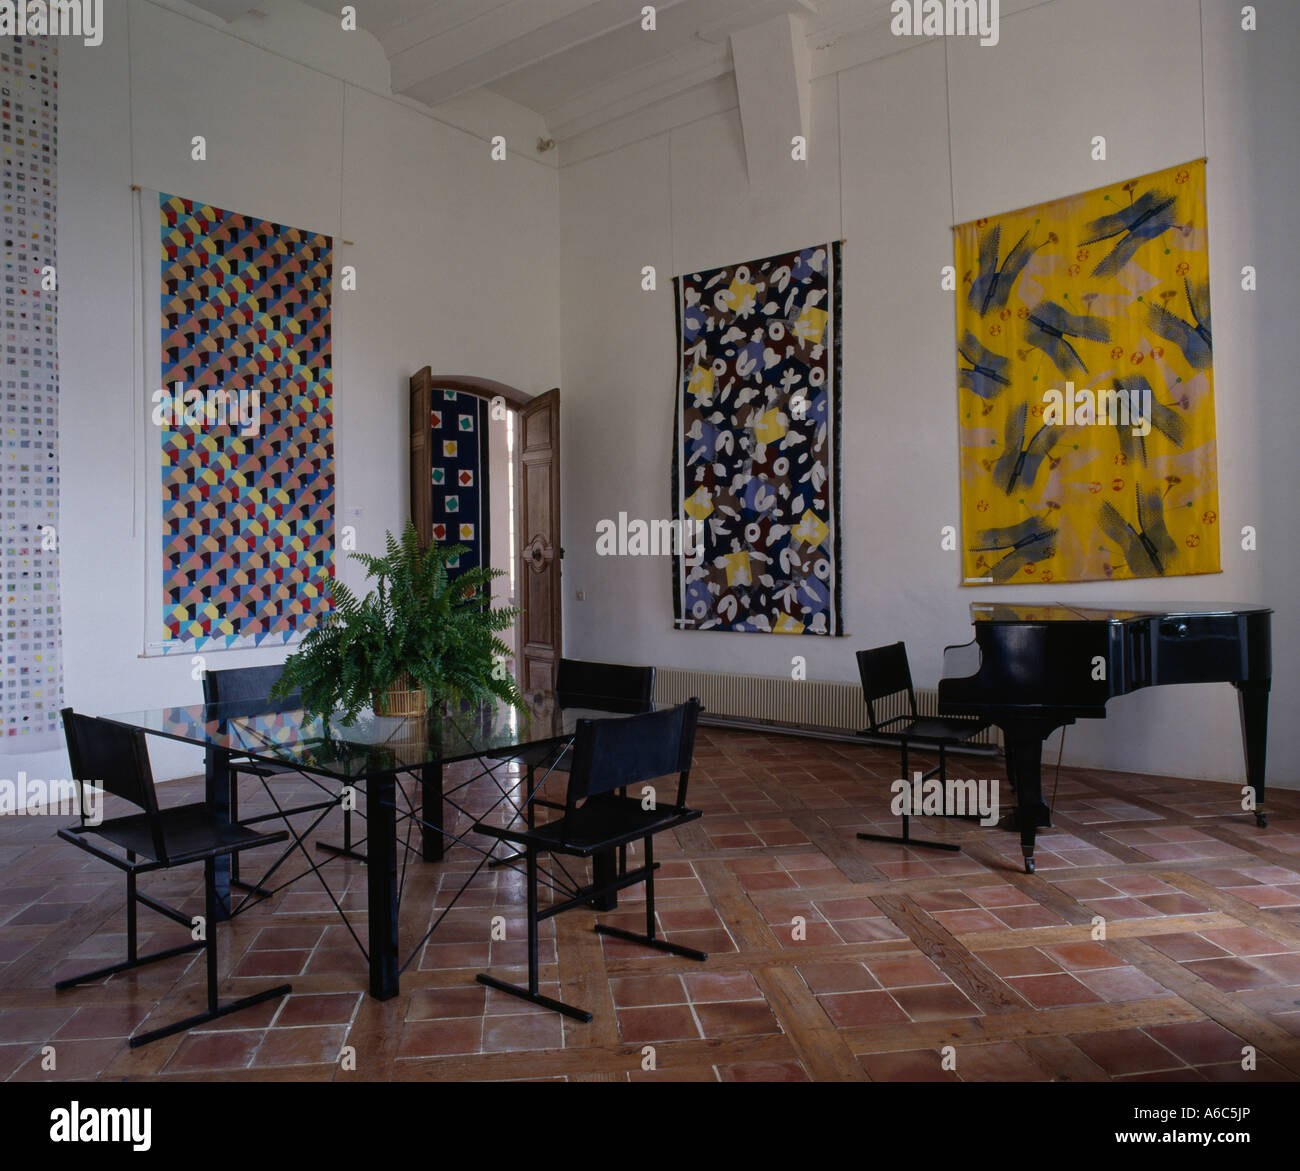 Large Abstract Paintings On Walls Of Modern Diningroom With Grand Piano And  Terracotta Tiled Floor